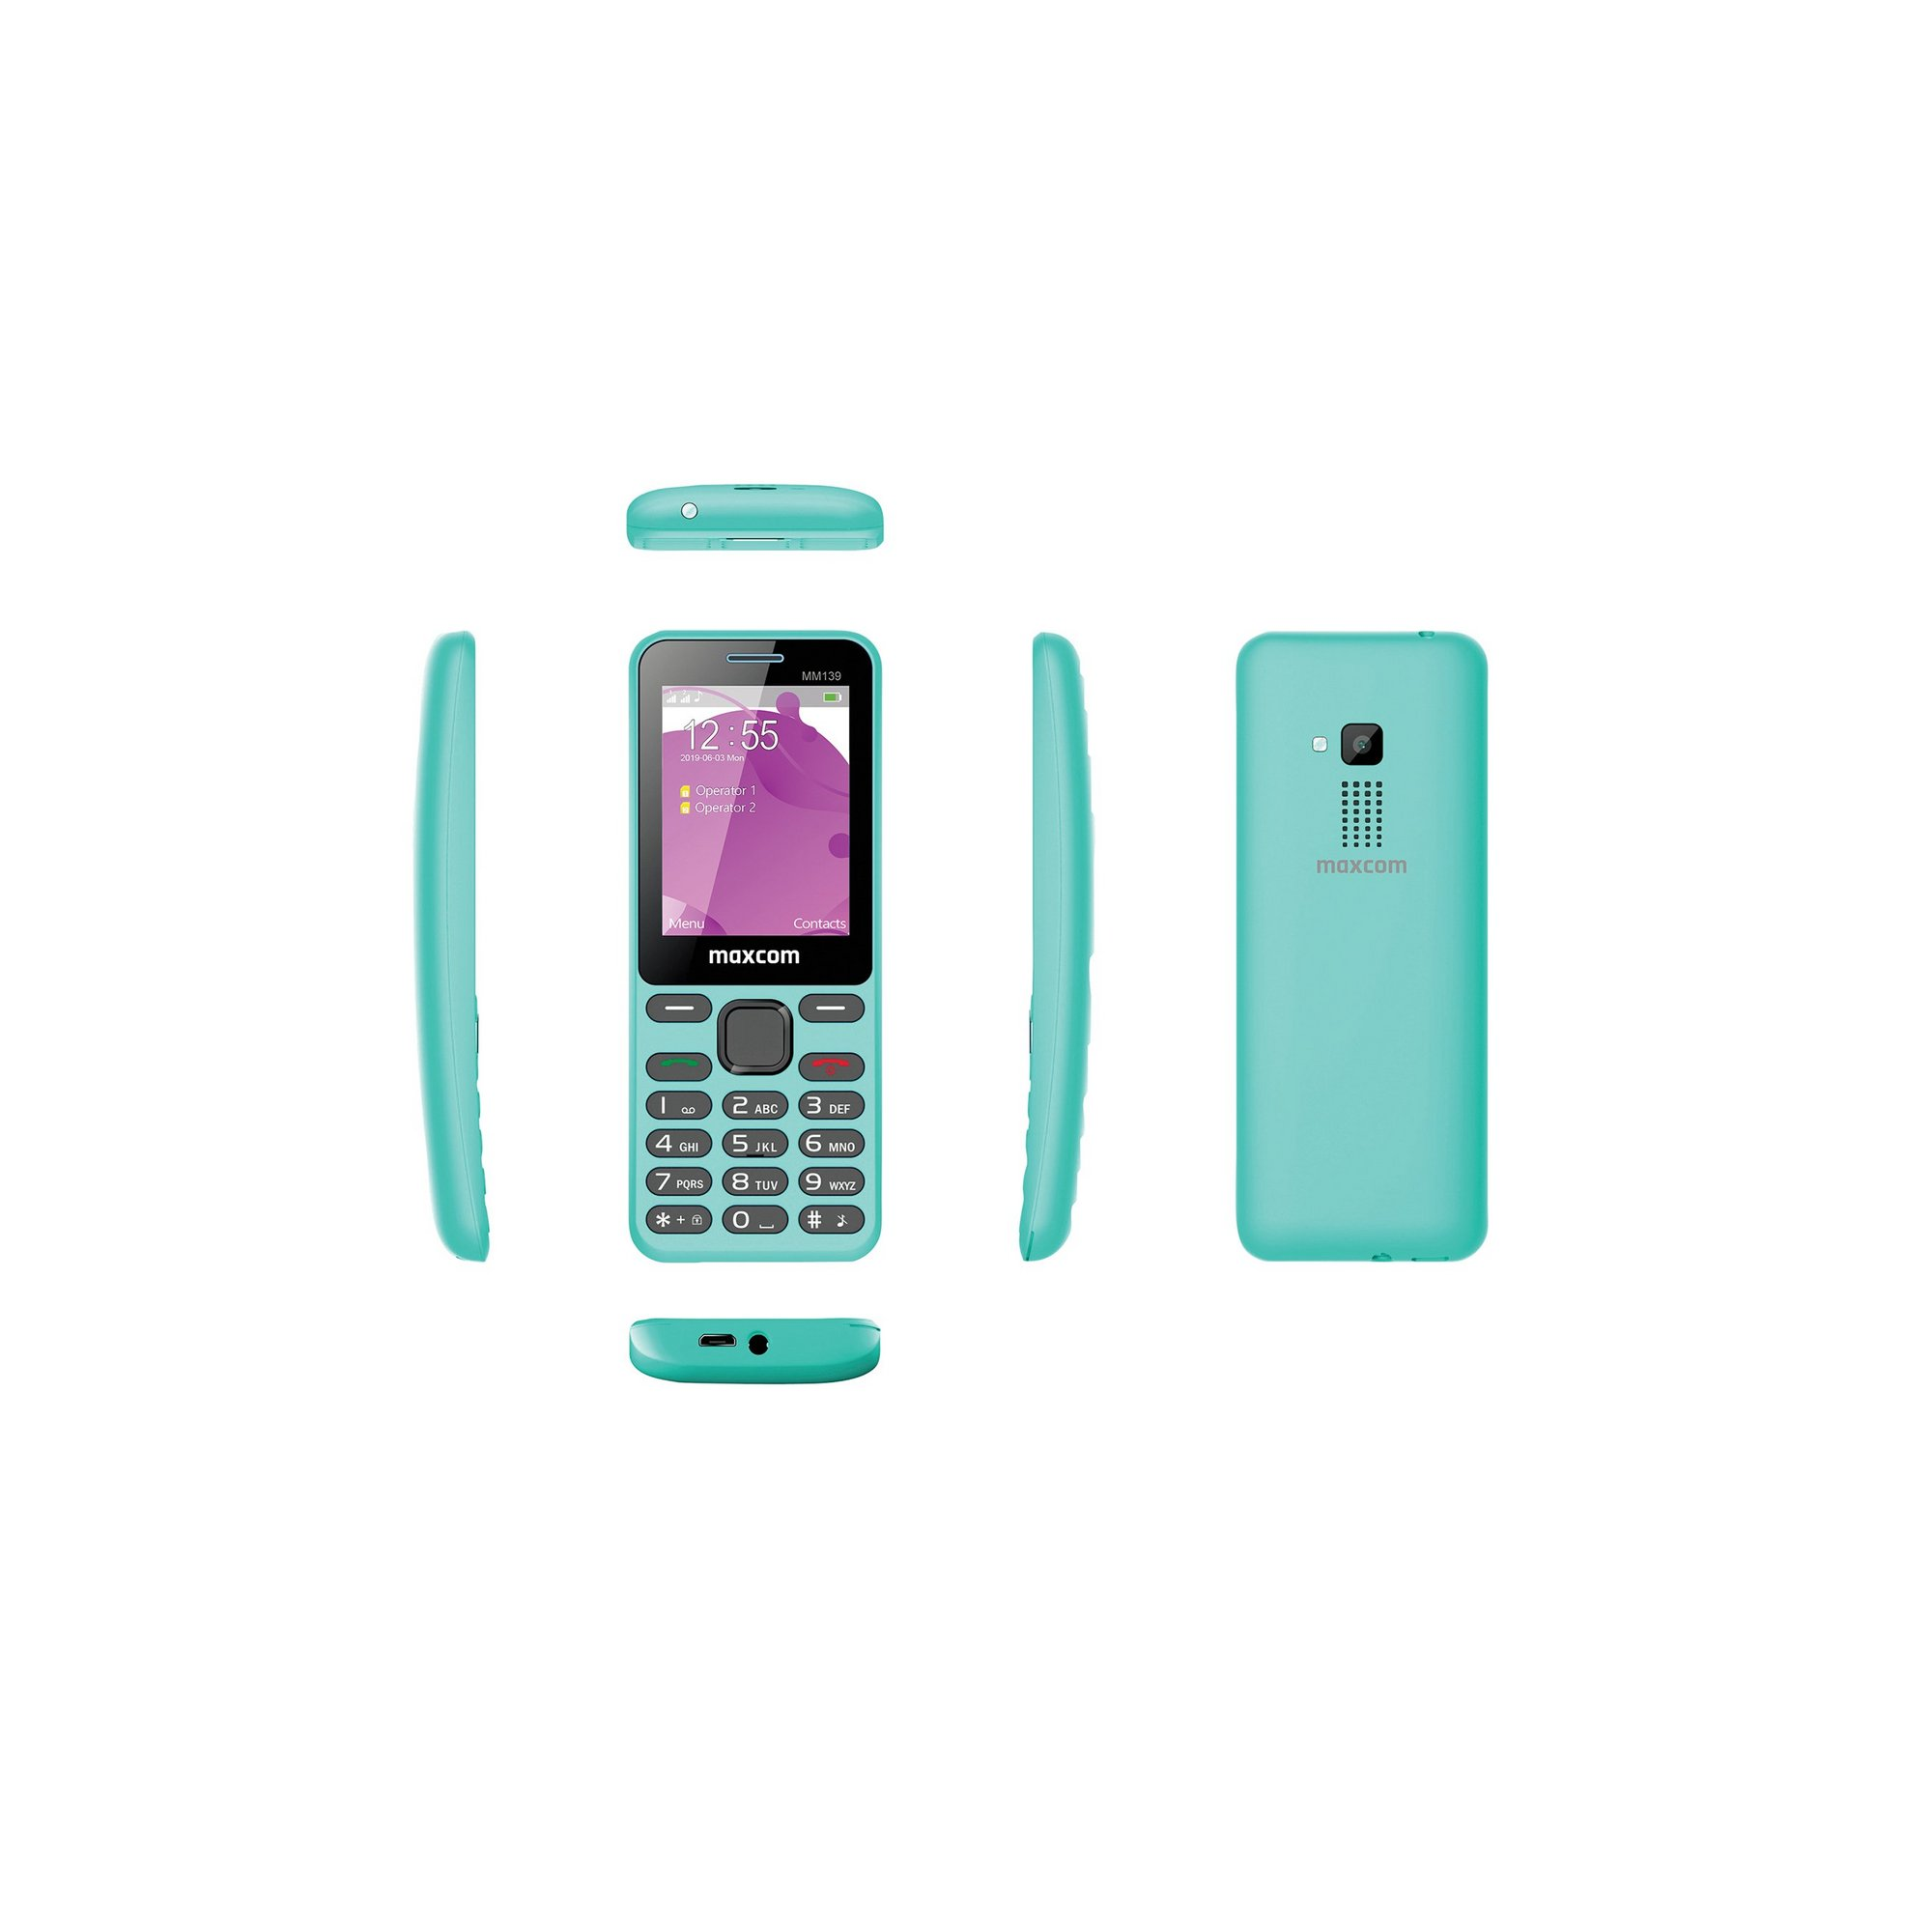 Image of Maxcom Classic MM139 2G Mobile Phone